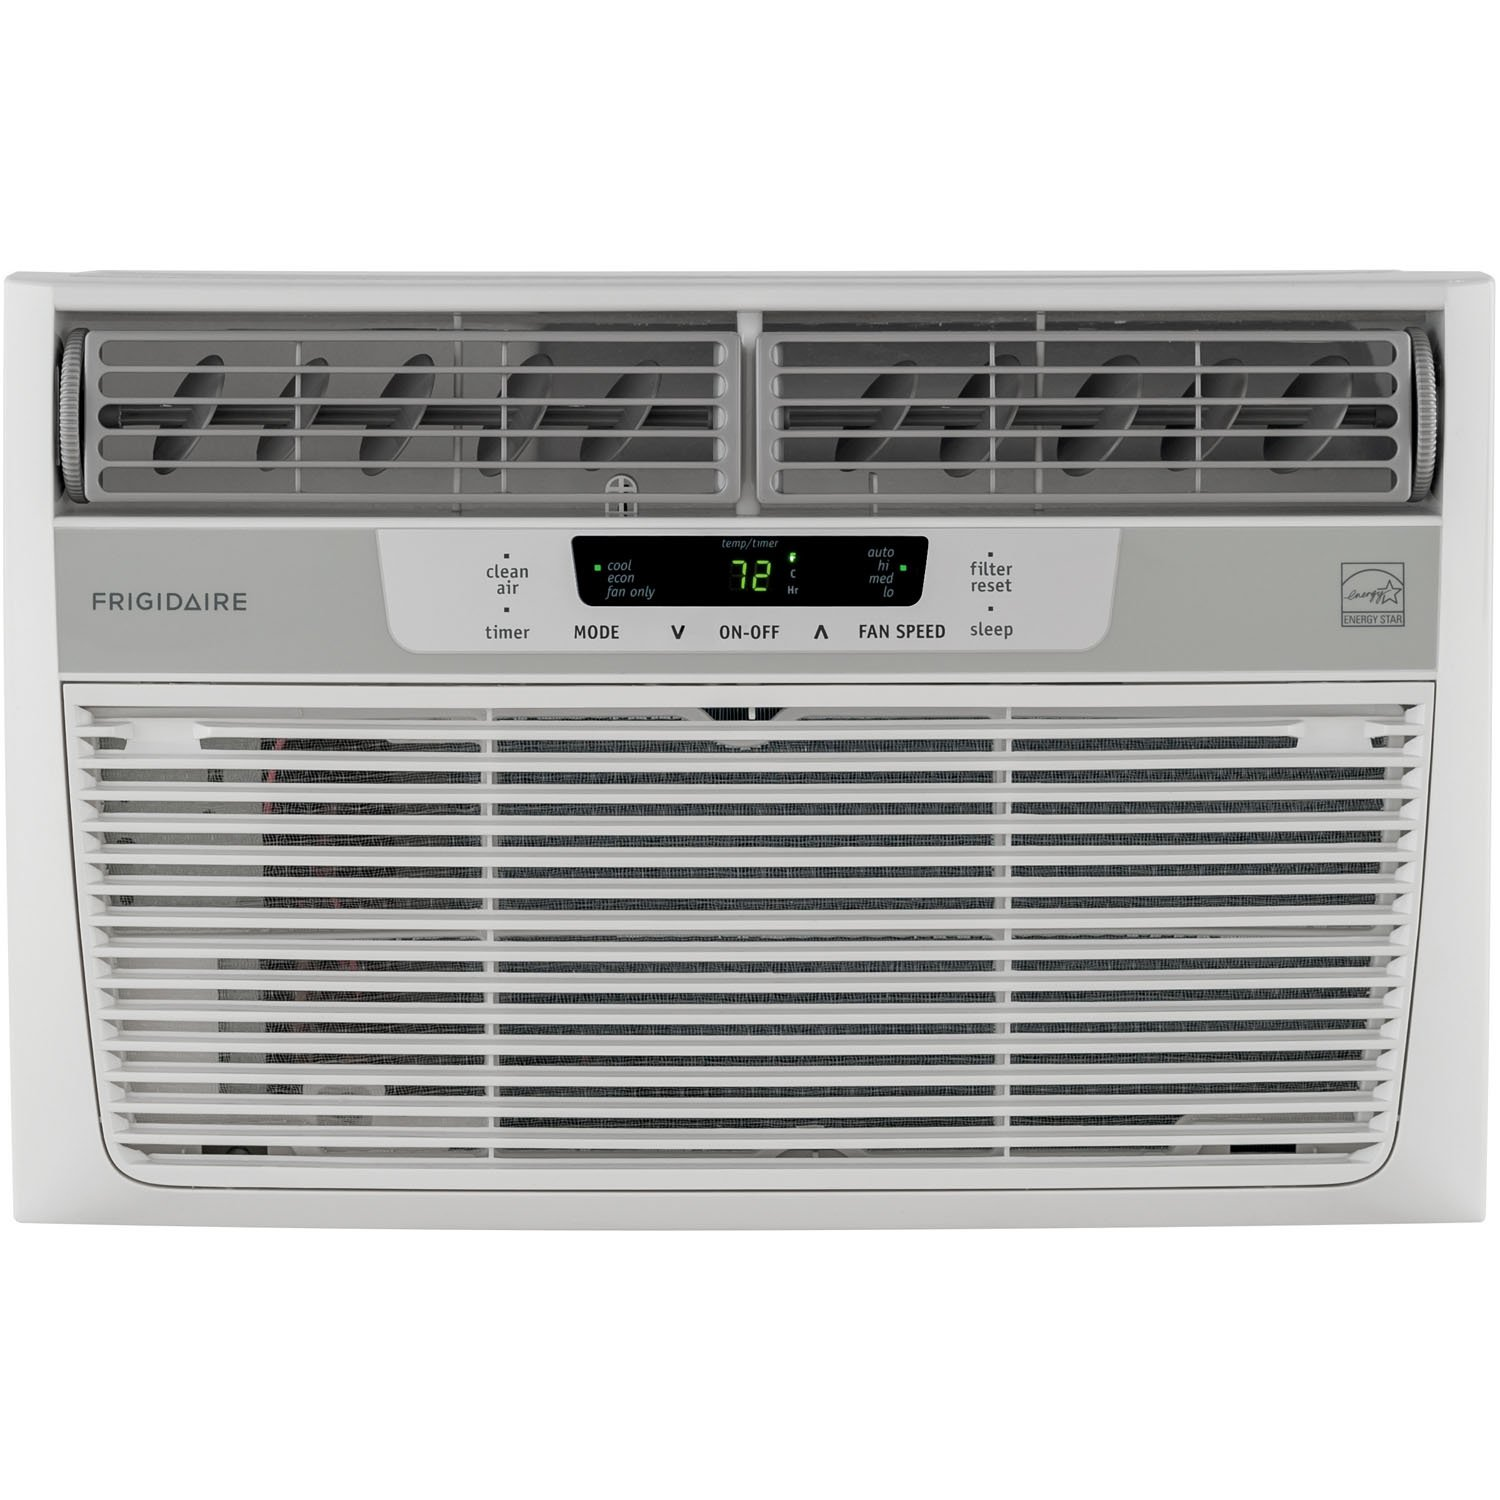 FFRE0833Q1 8 000 BTU 115V Window Mounted Mini Compact Air Conditioner #4D6147